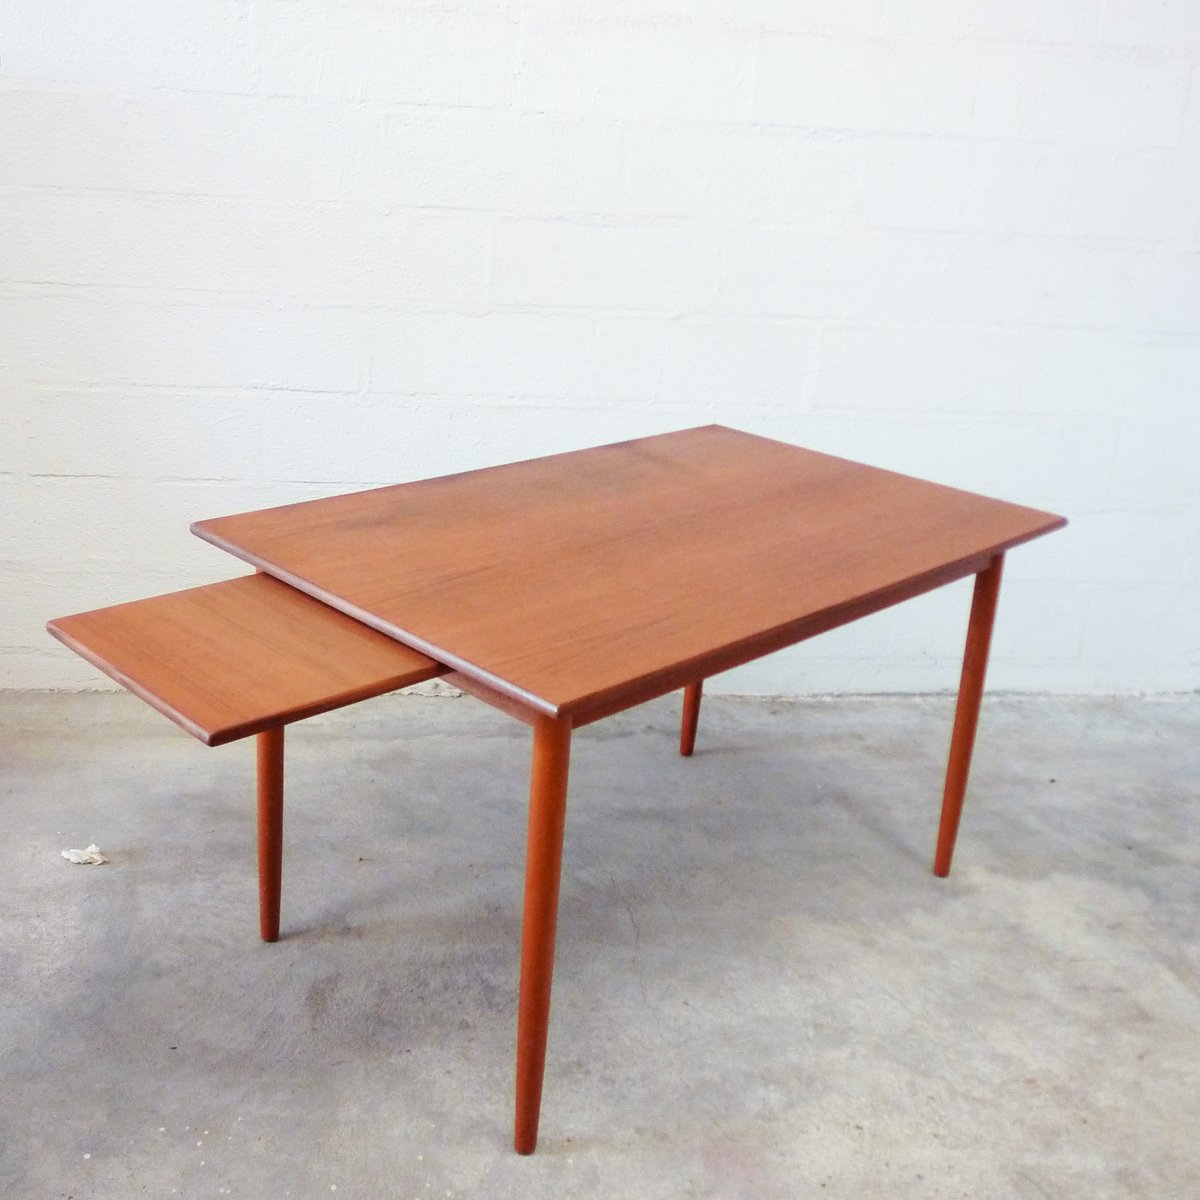 Teak Dining Table 1960s for sale at Pamono : teak dining table 1960s 2 from www.pamono.com size 1200 x 1200 jpeg 93kB